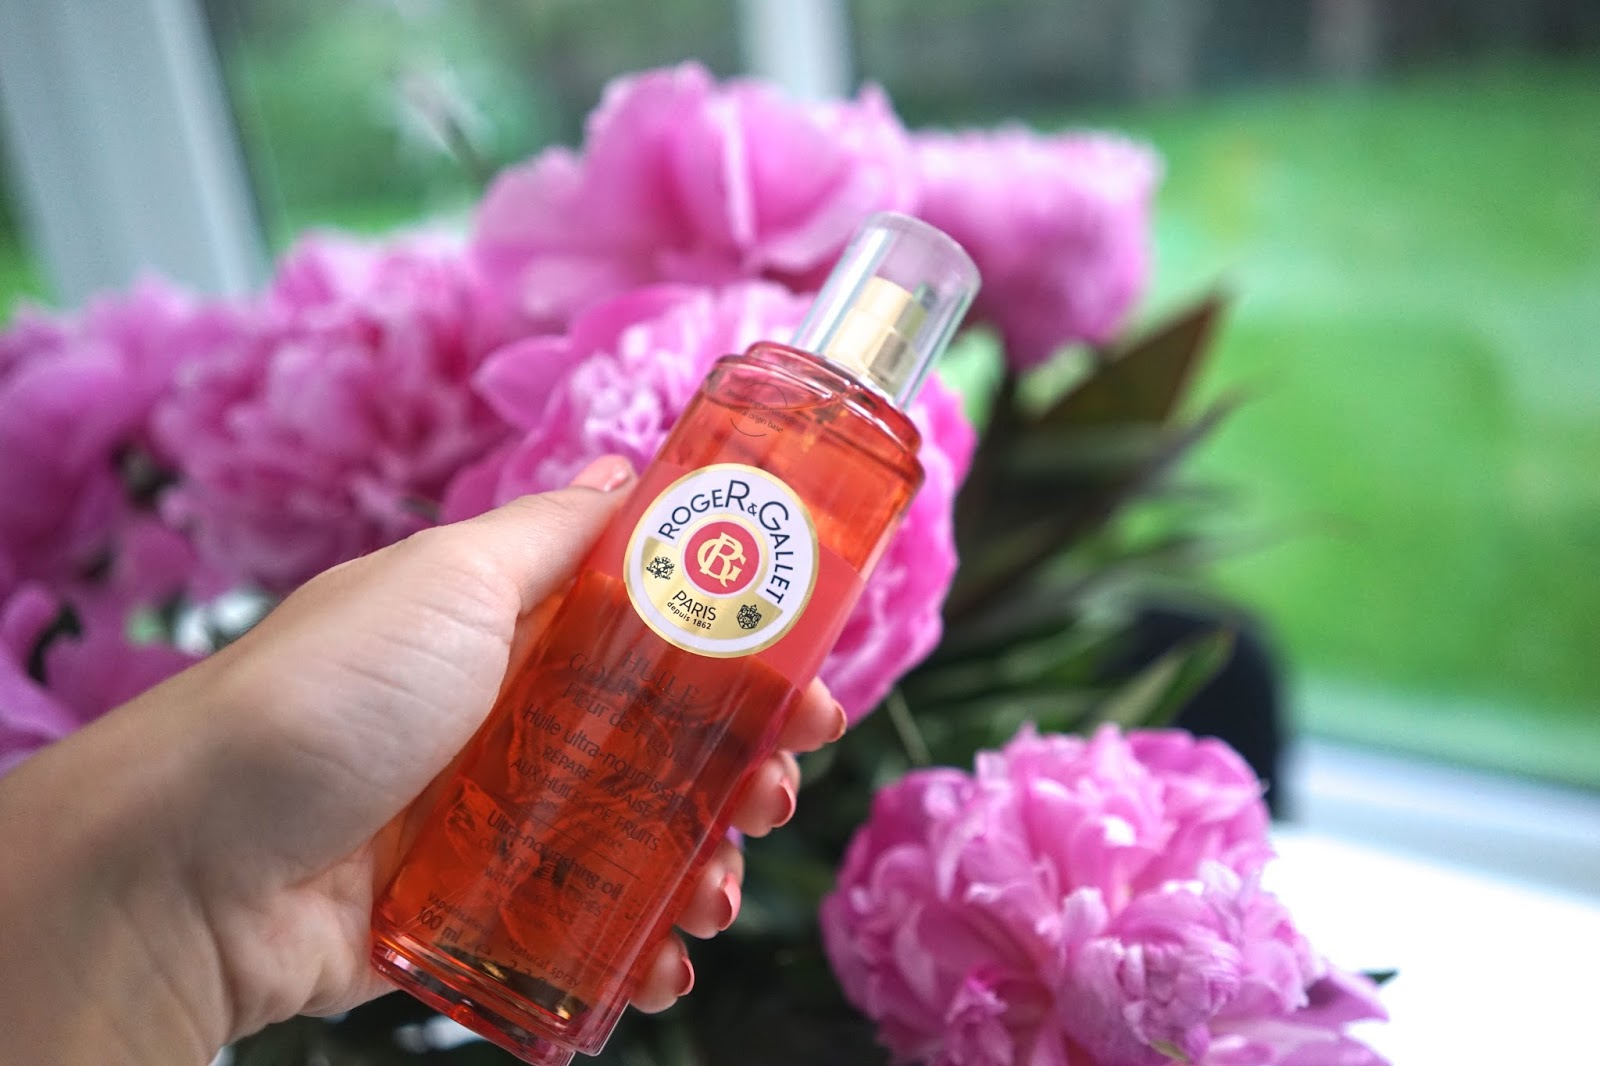 roger and gallet nourishing body oil